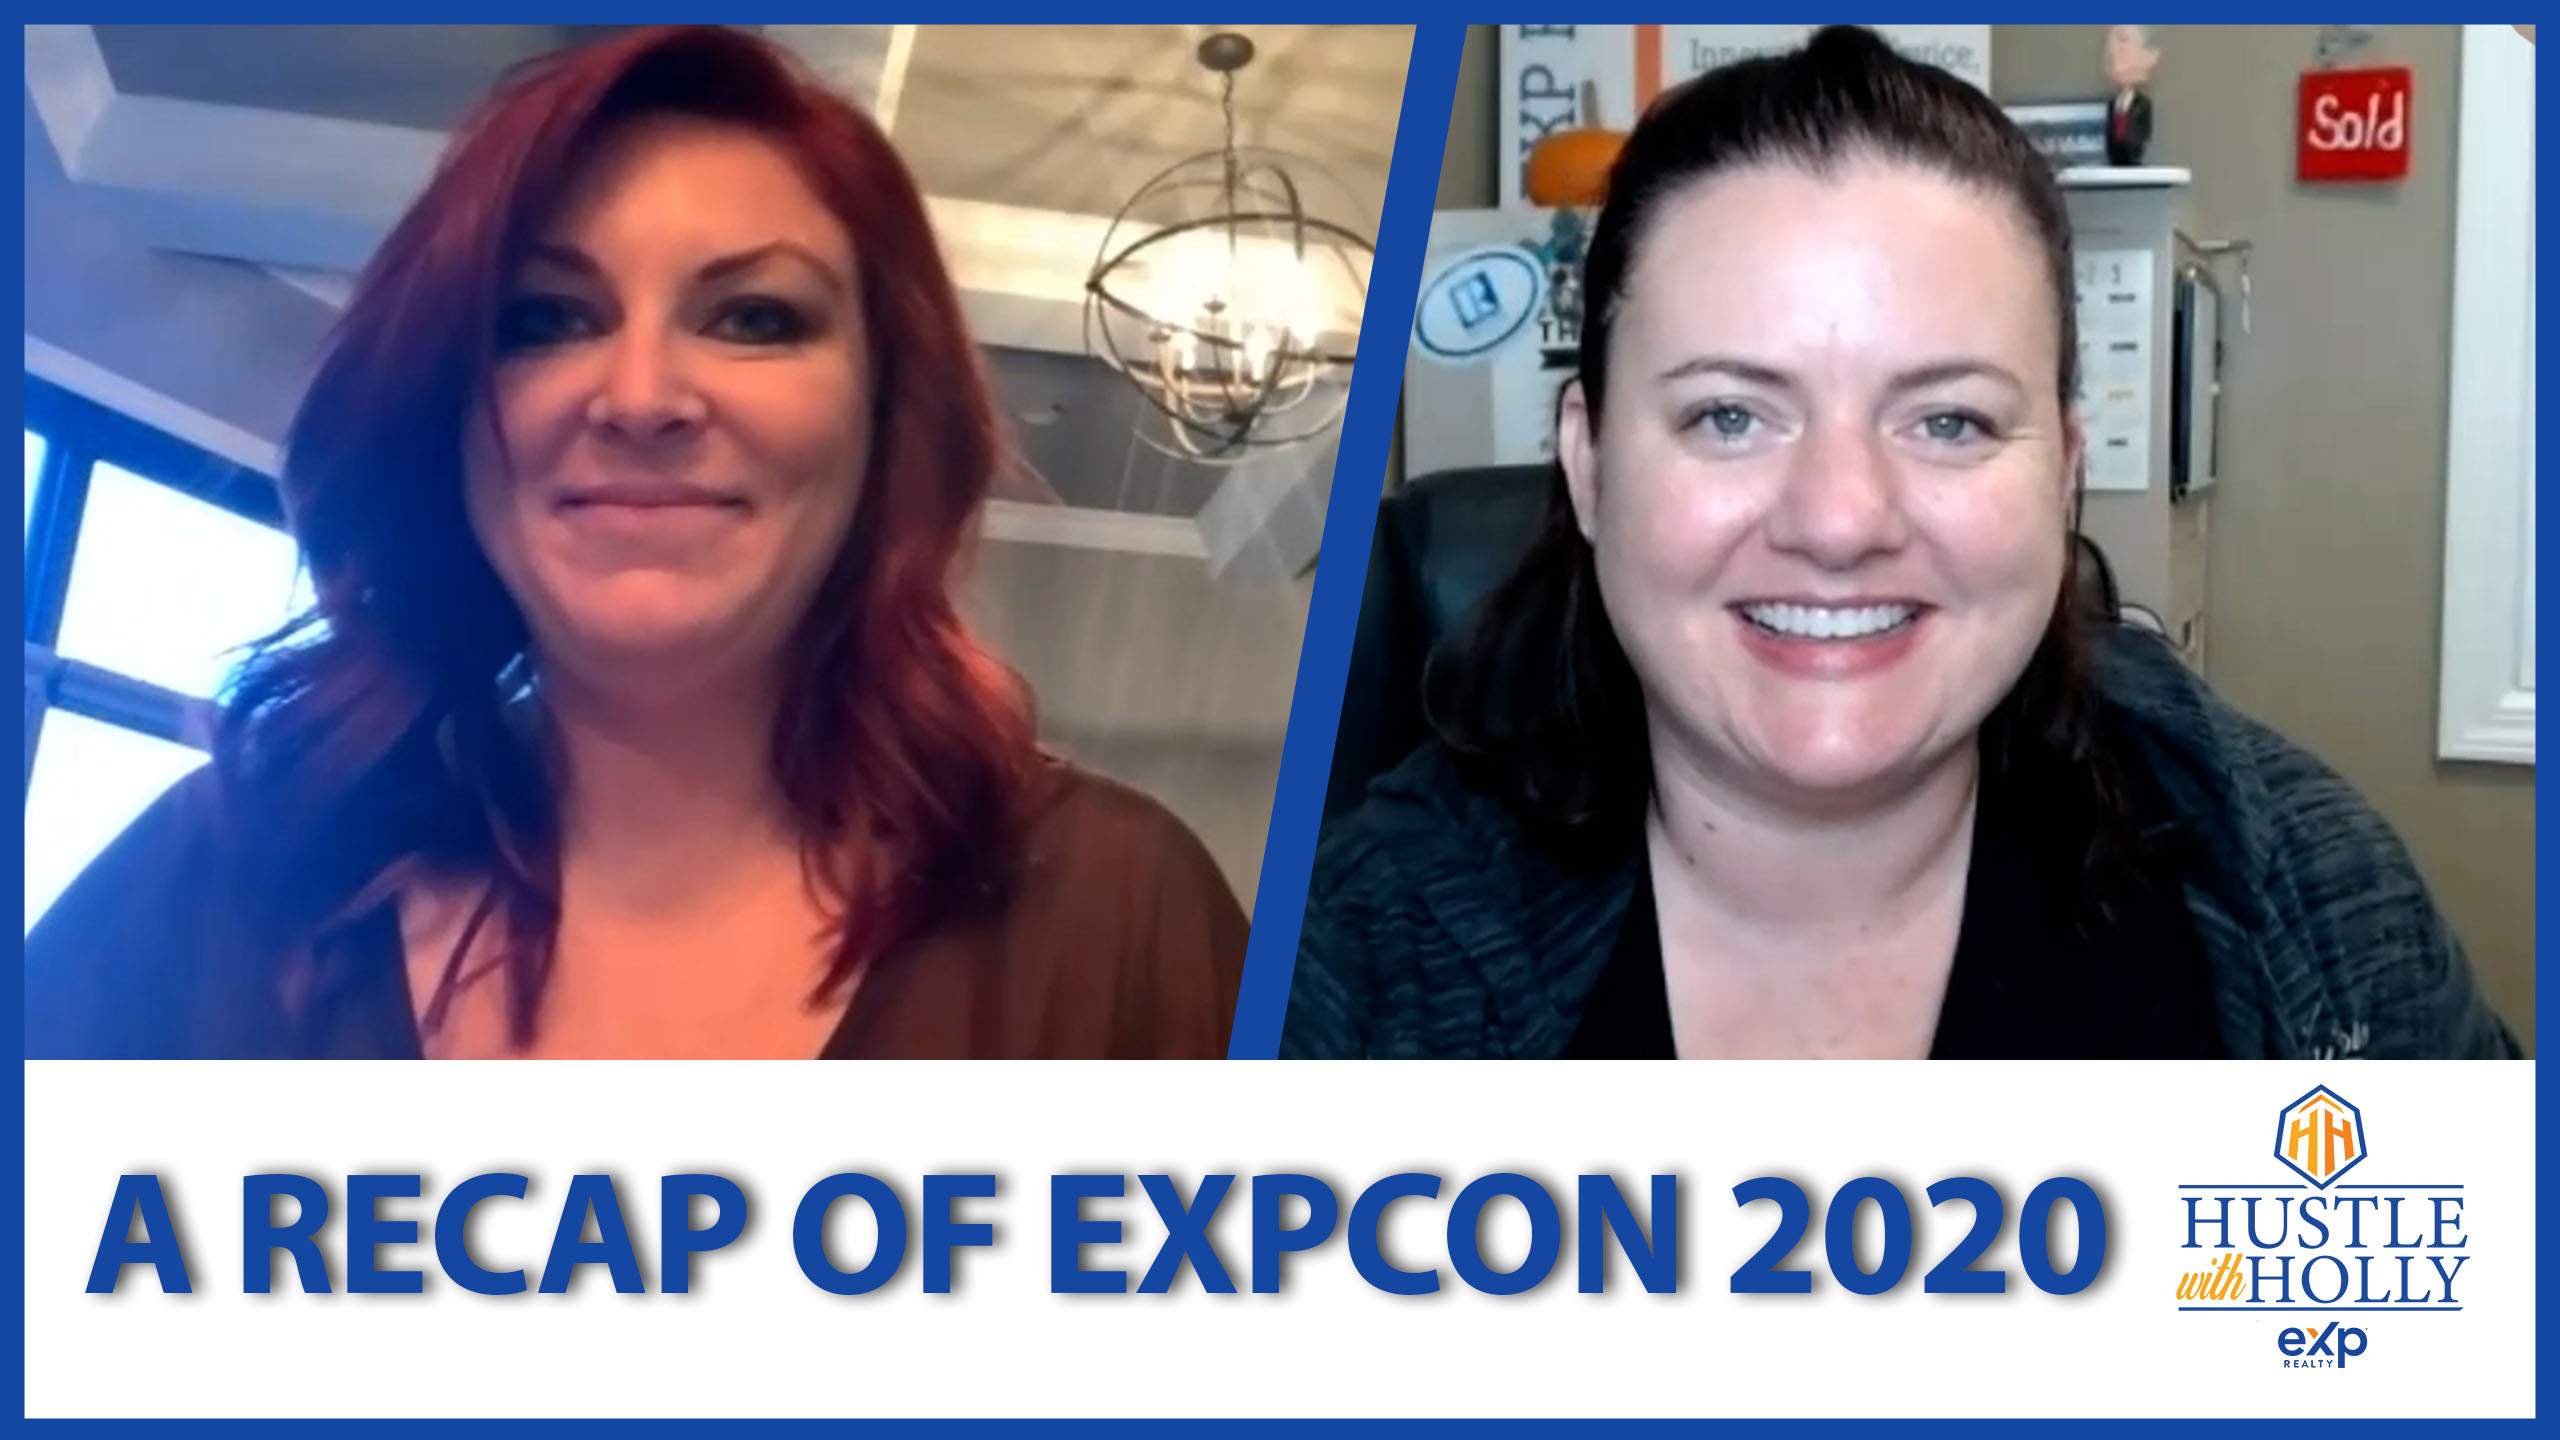 Q: Did You Miss EXPCON 2020?